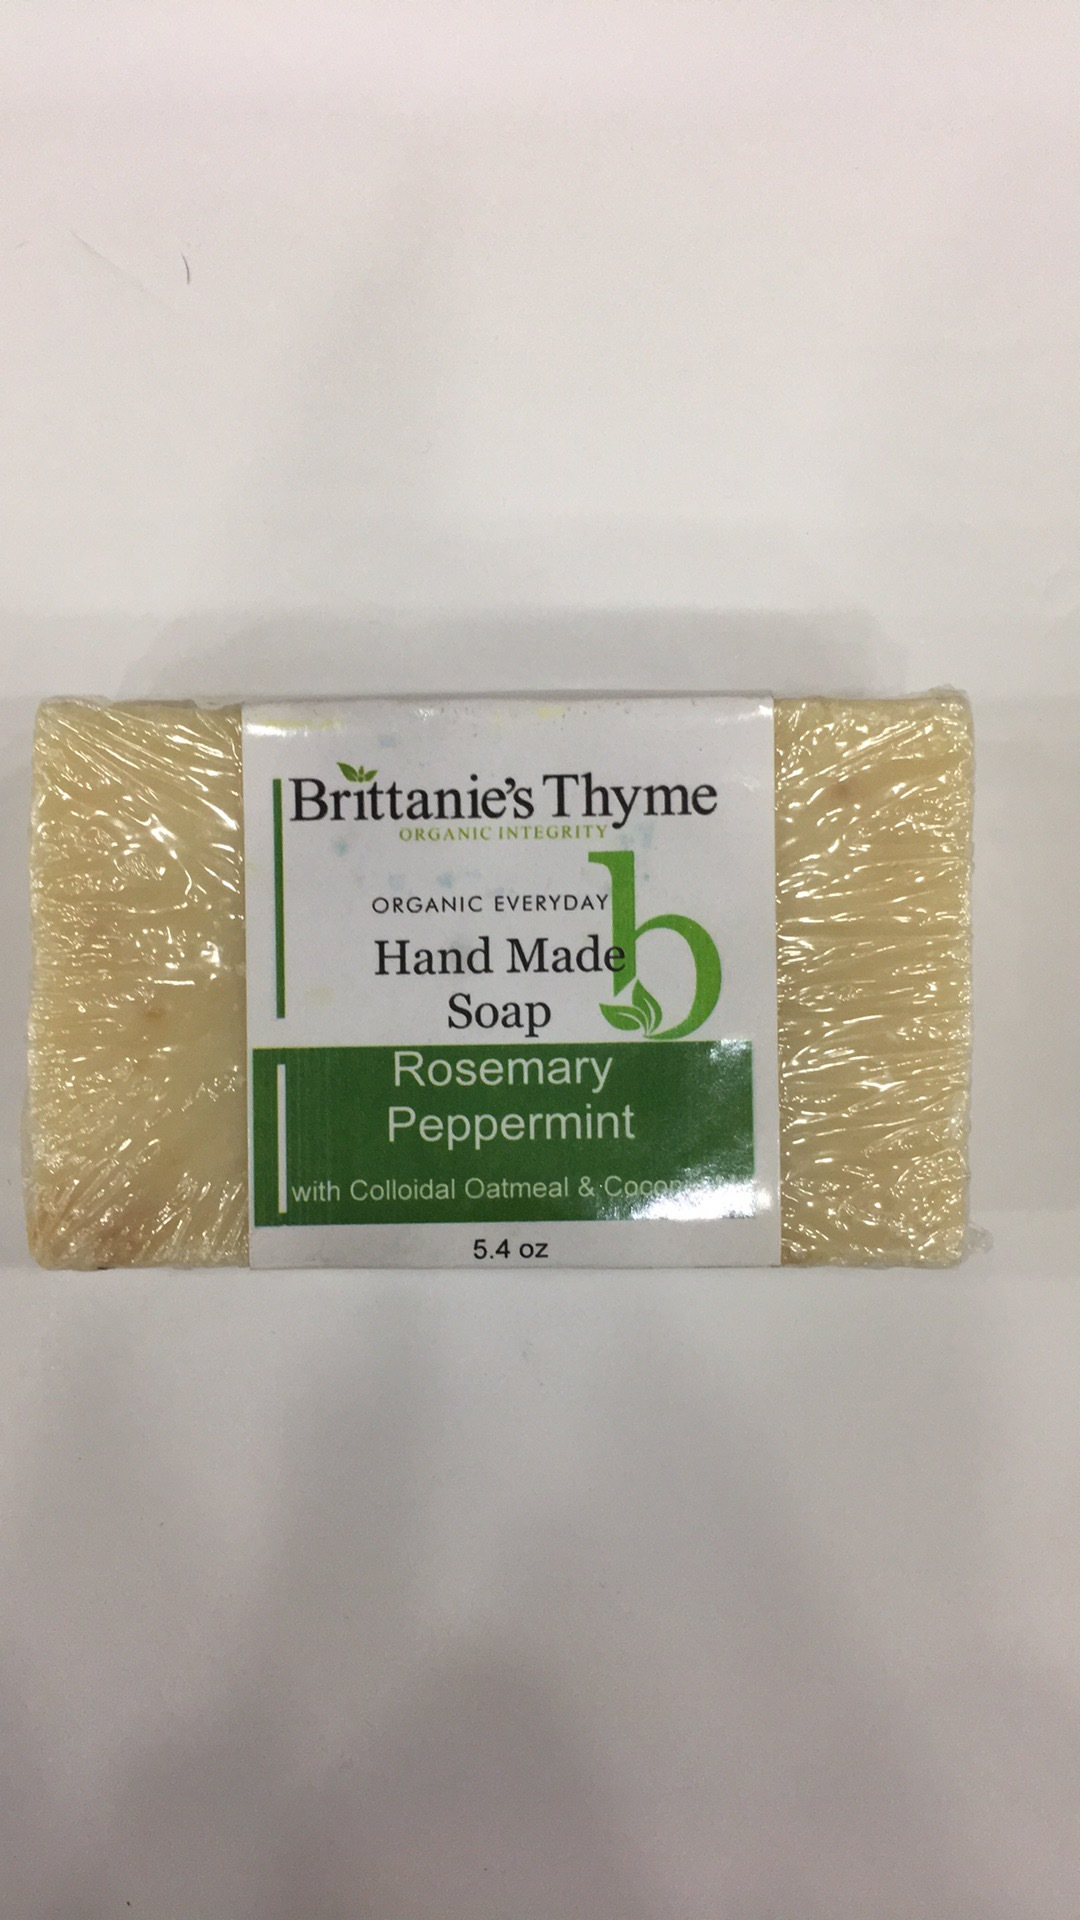 Hand Made Soap | The Natural Products Brands Directory